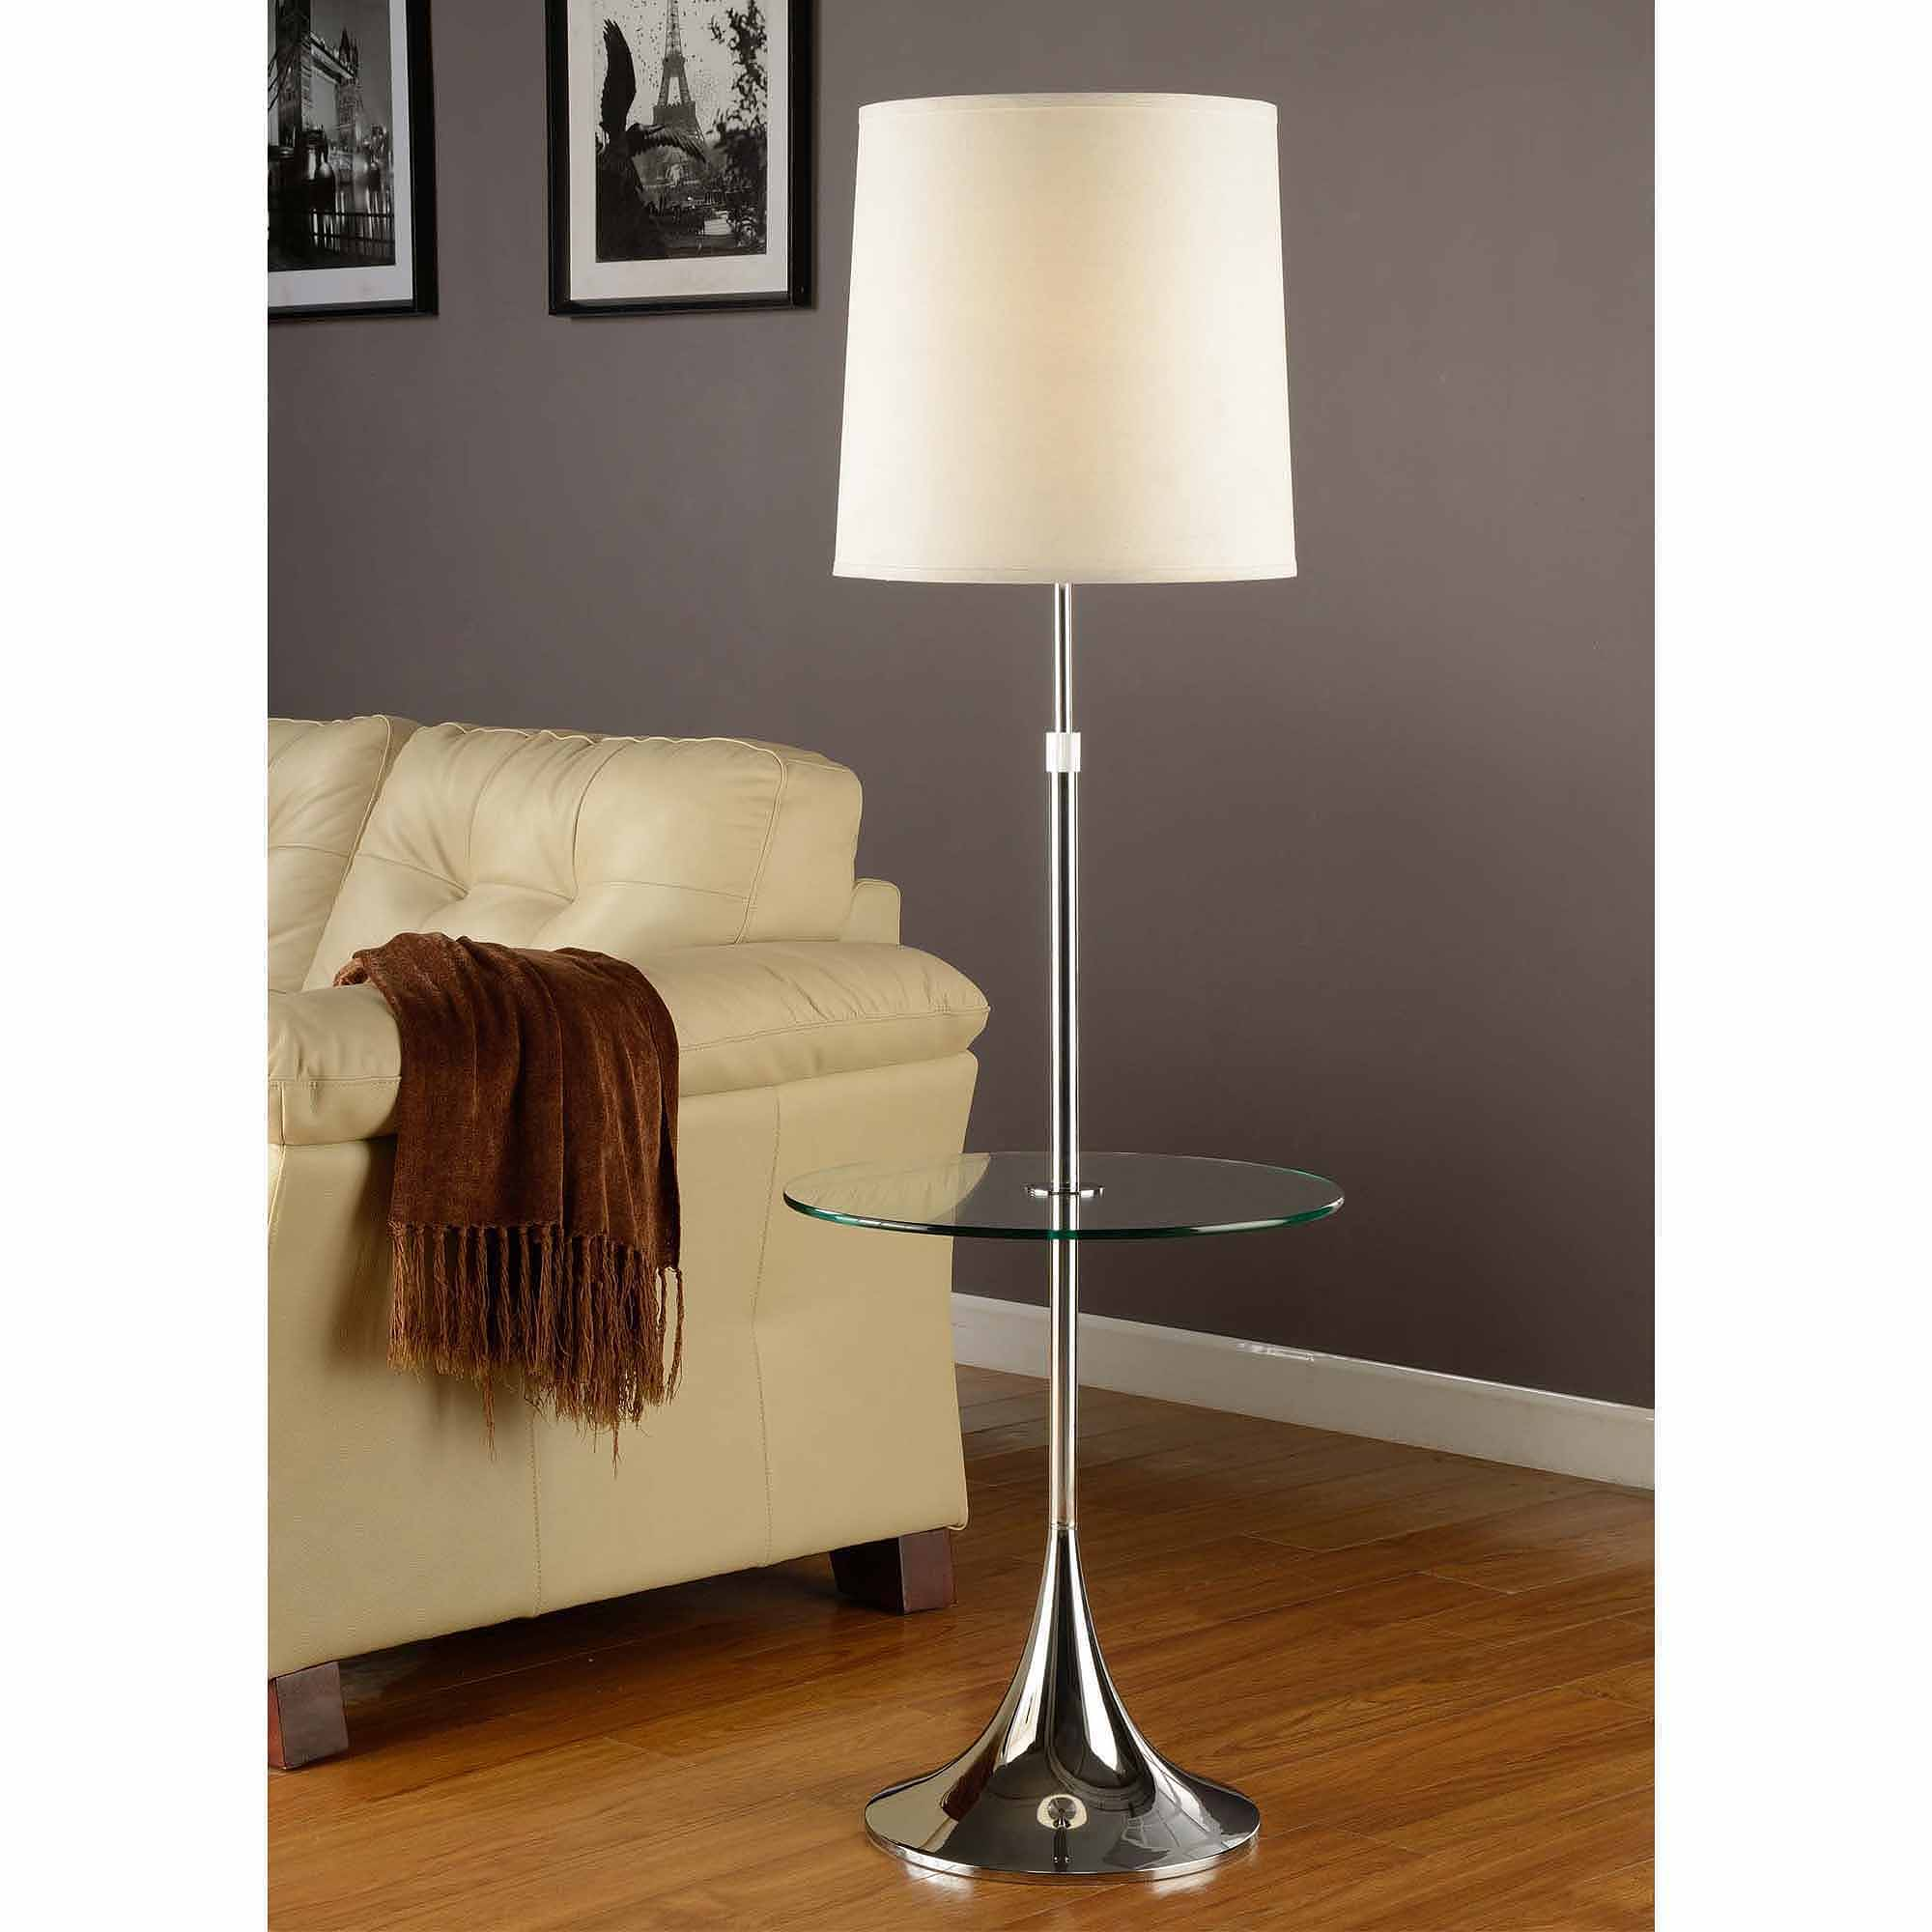 "Artiva USA 52-65"" Adjustable Chrome Sofa Lamp with Tempered Glass Table"